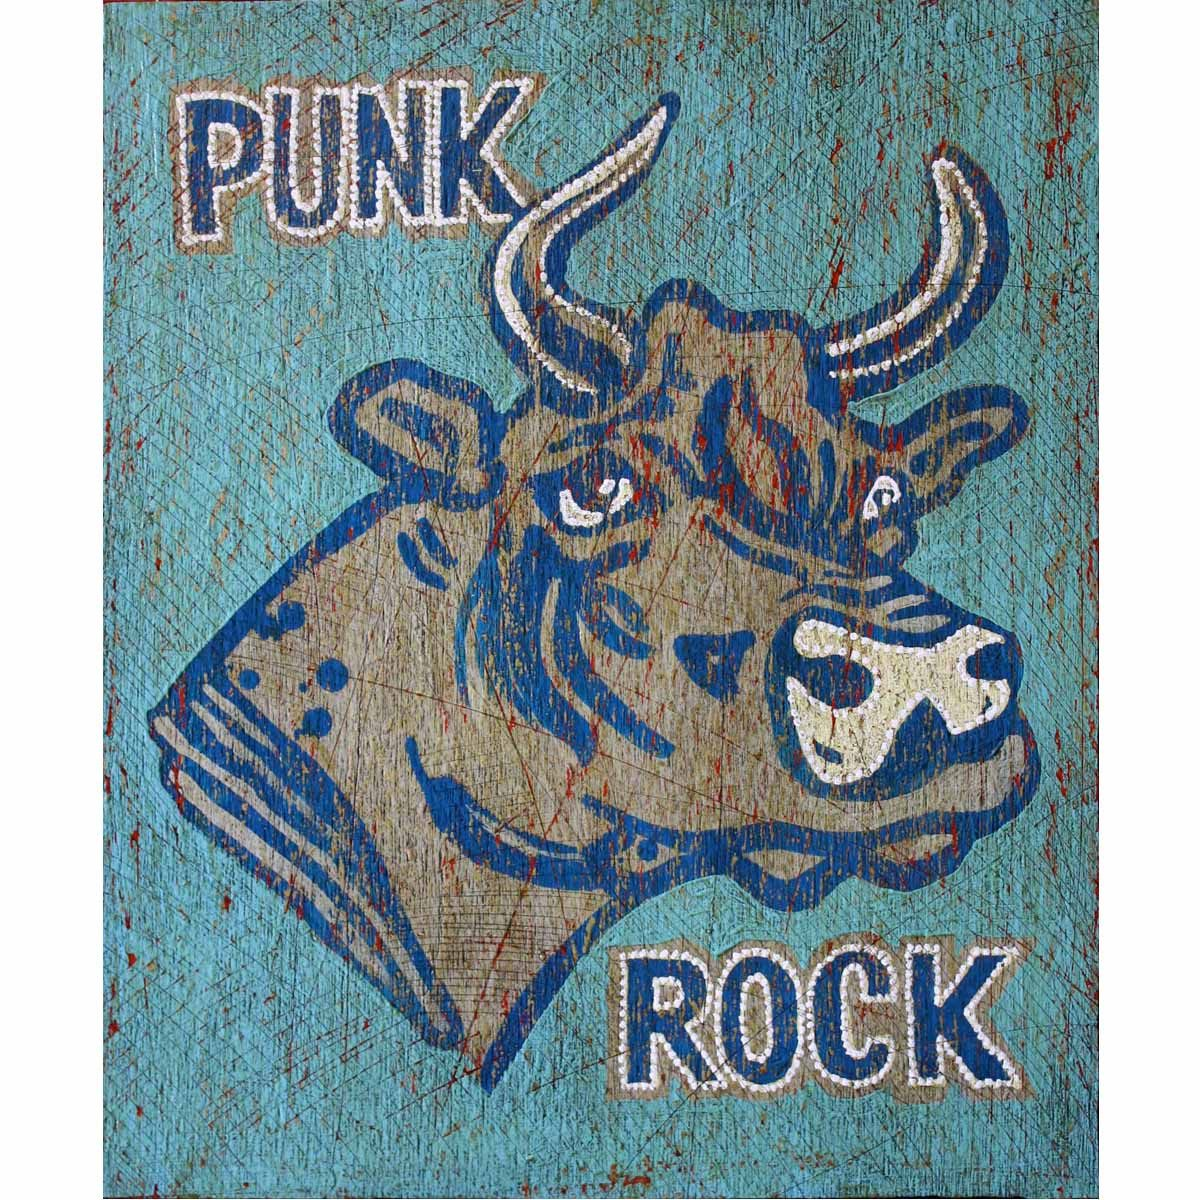 Punk Rock - Jon Langford - Yard Dog Art